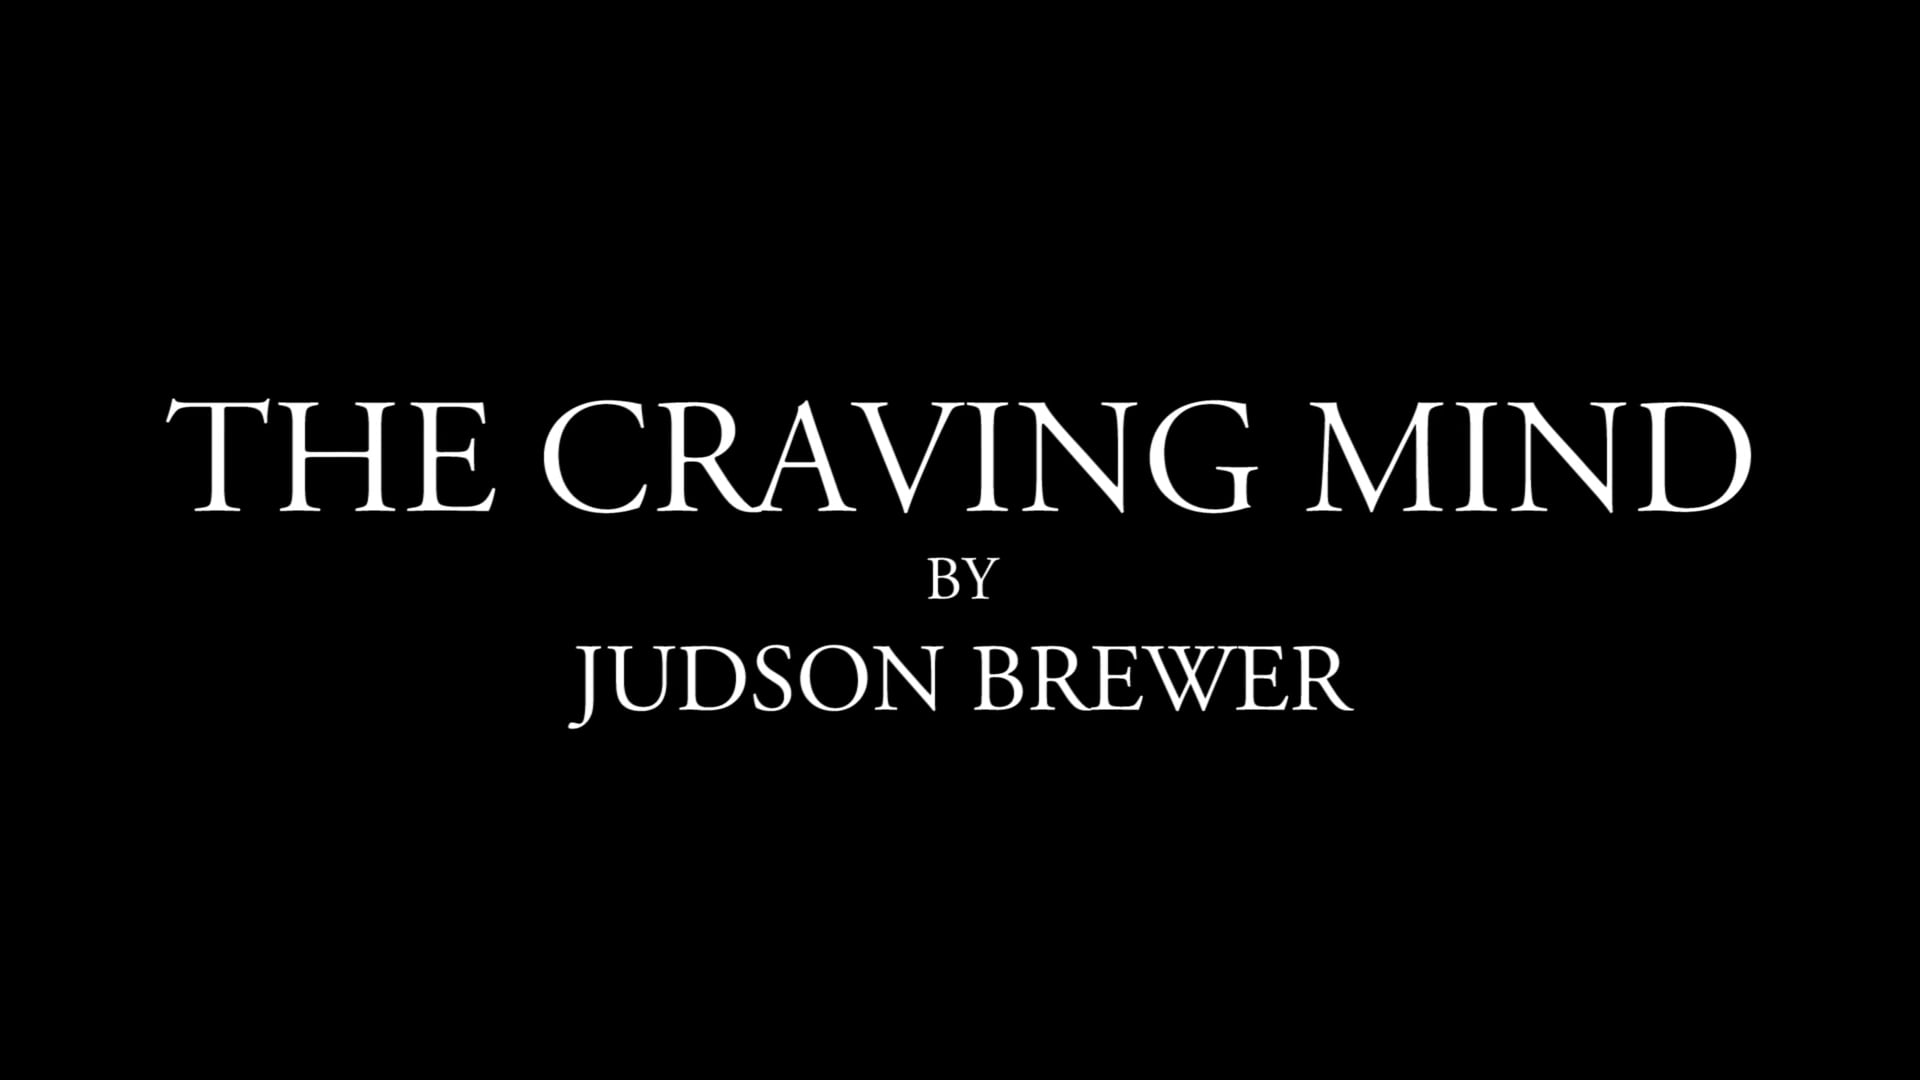 The Craving Mind- Judson Brewer